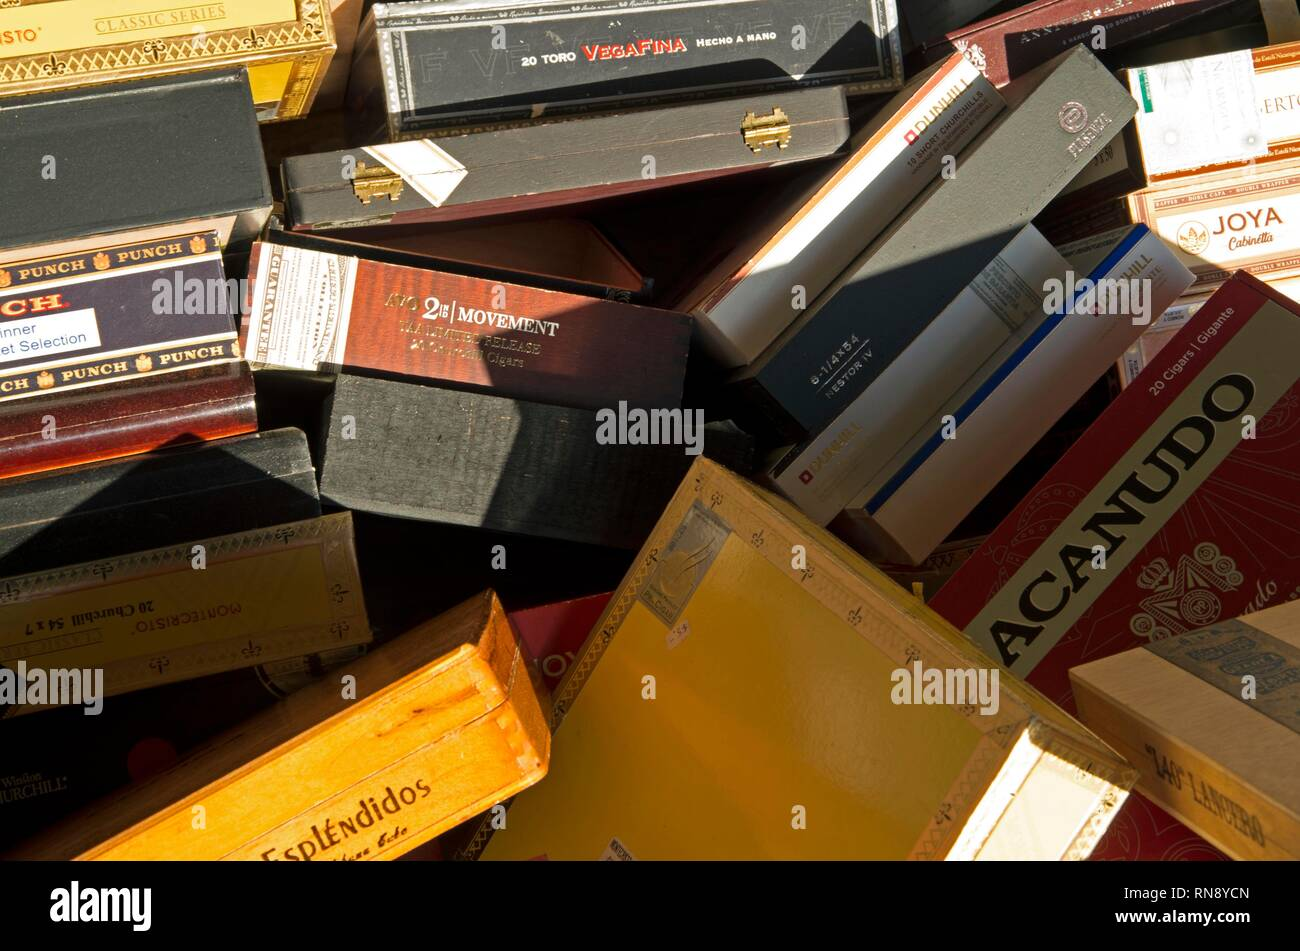 A stack of empty cigar boxes is up for sale at Telford's Cigar Lounge in Marin County. - Stock Image